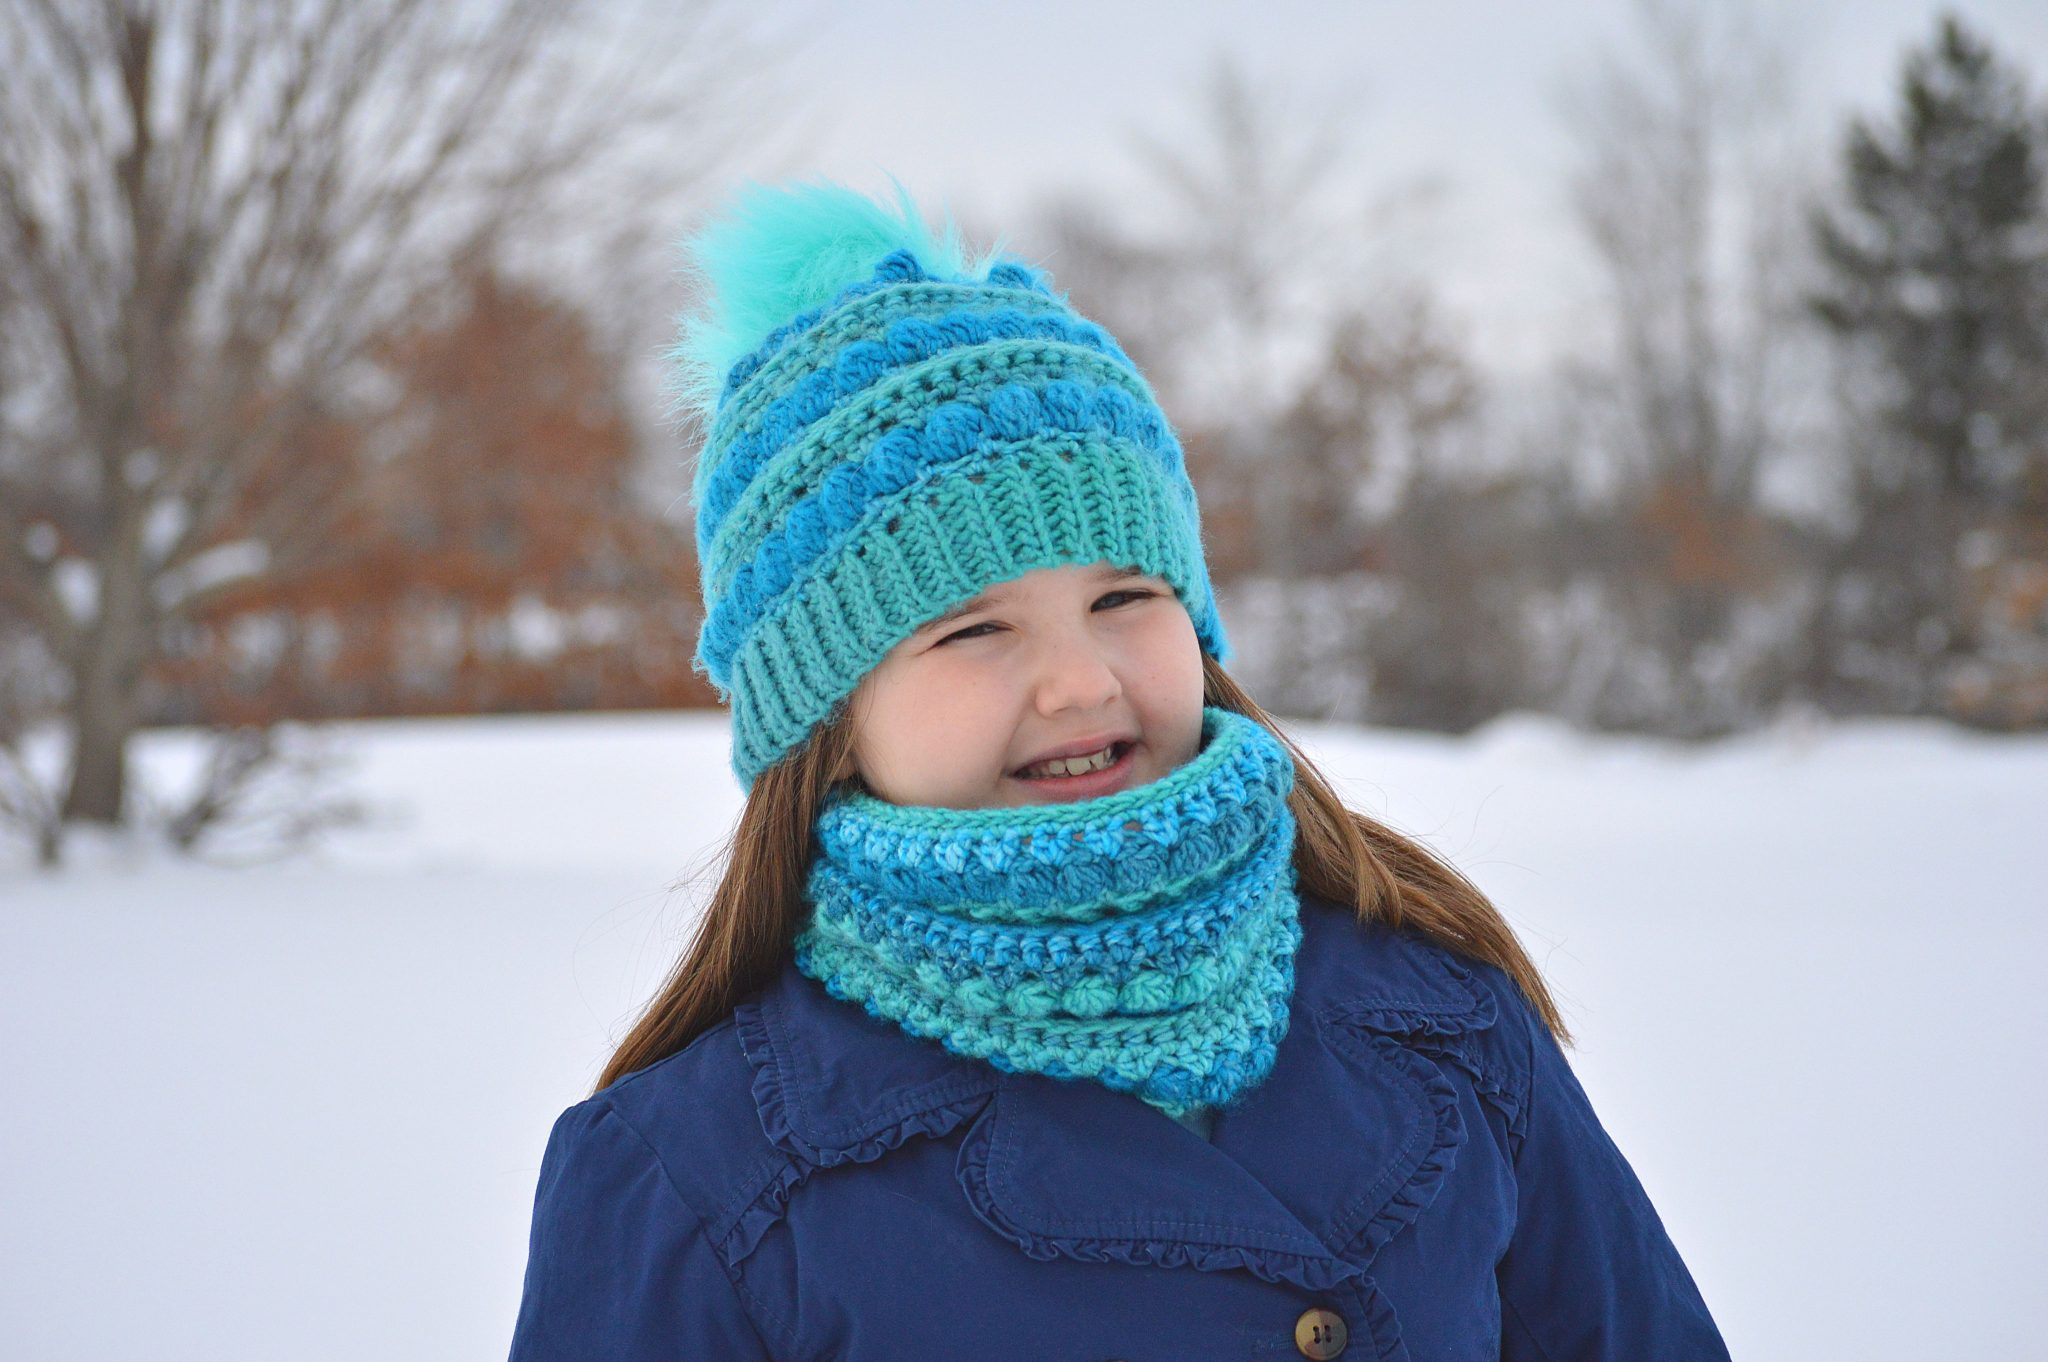 Colorscape Cowl and Beanie Crochet Patterns